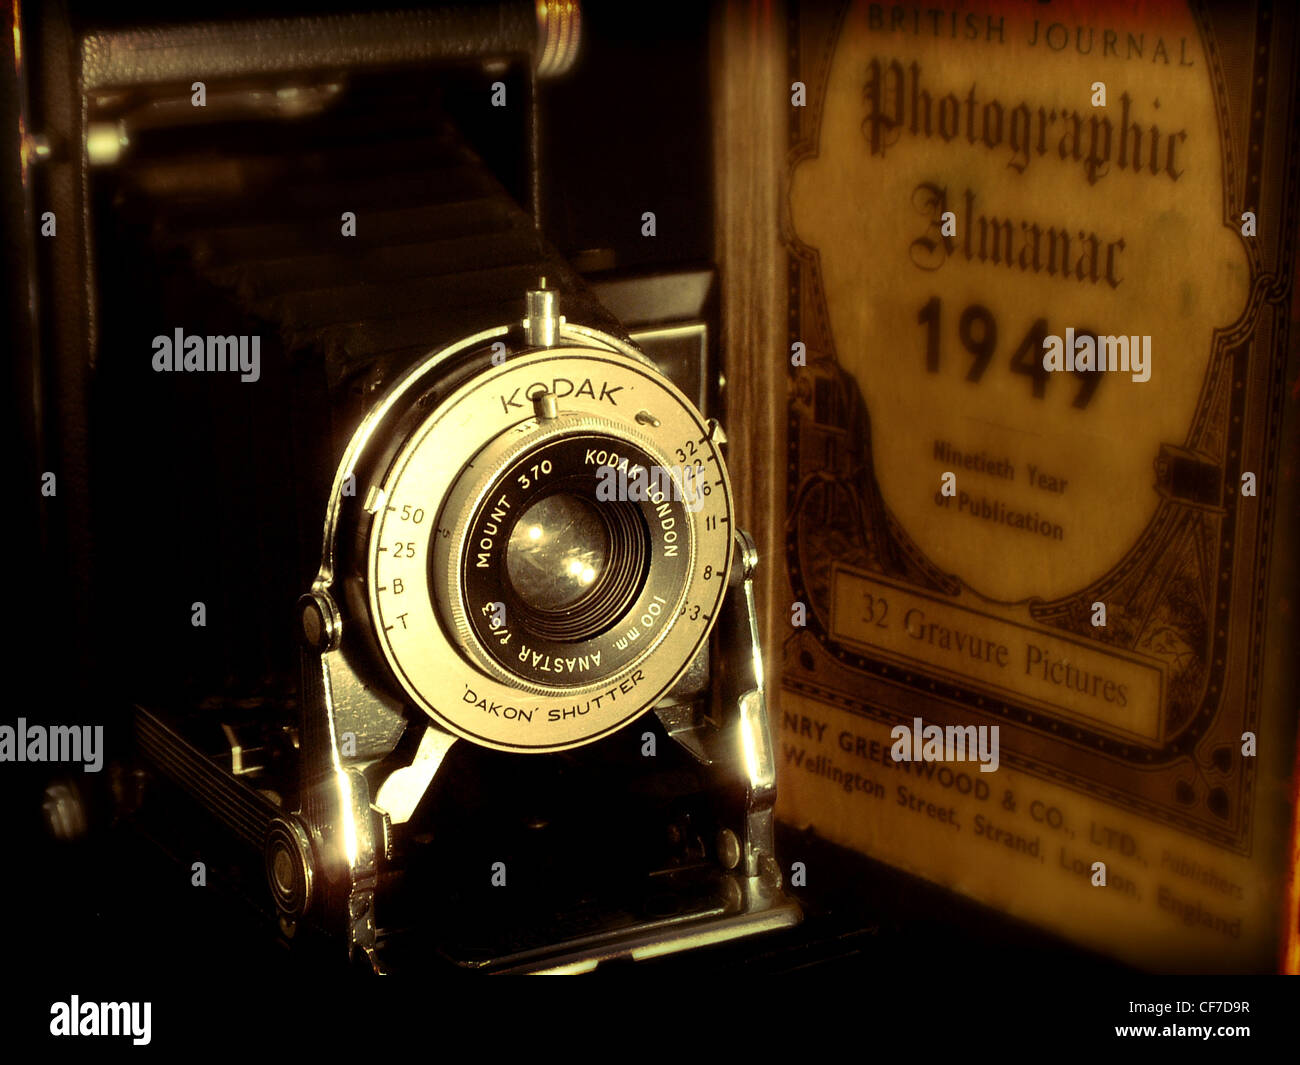 Kodak brownie camera and Photographic Almanac 1949 old vintage shot, made in england Stock Photo